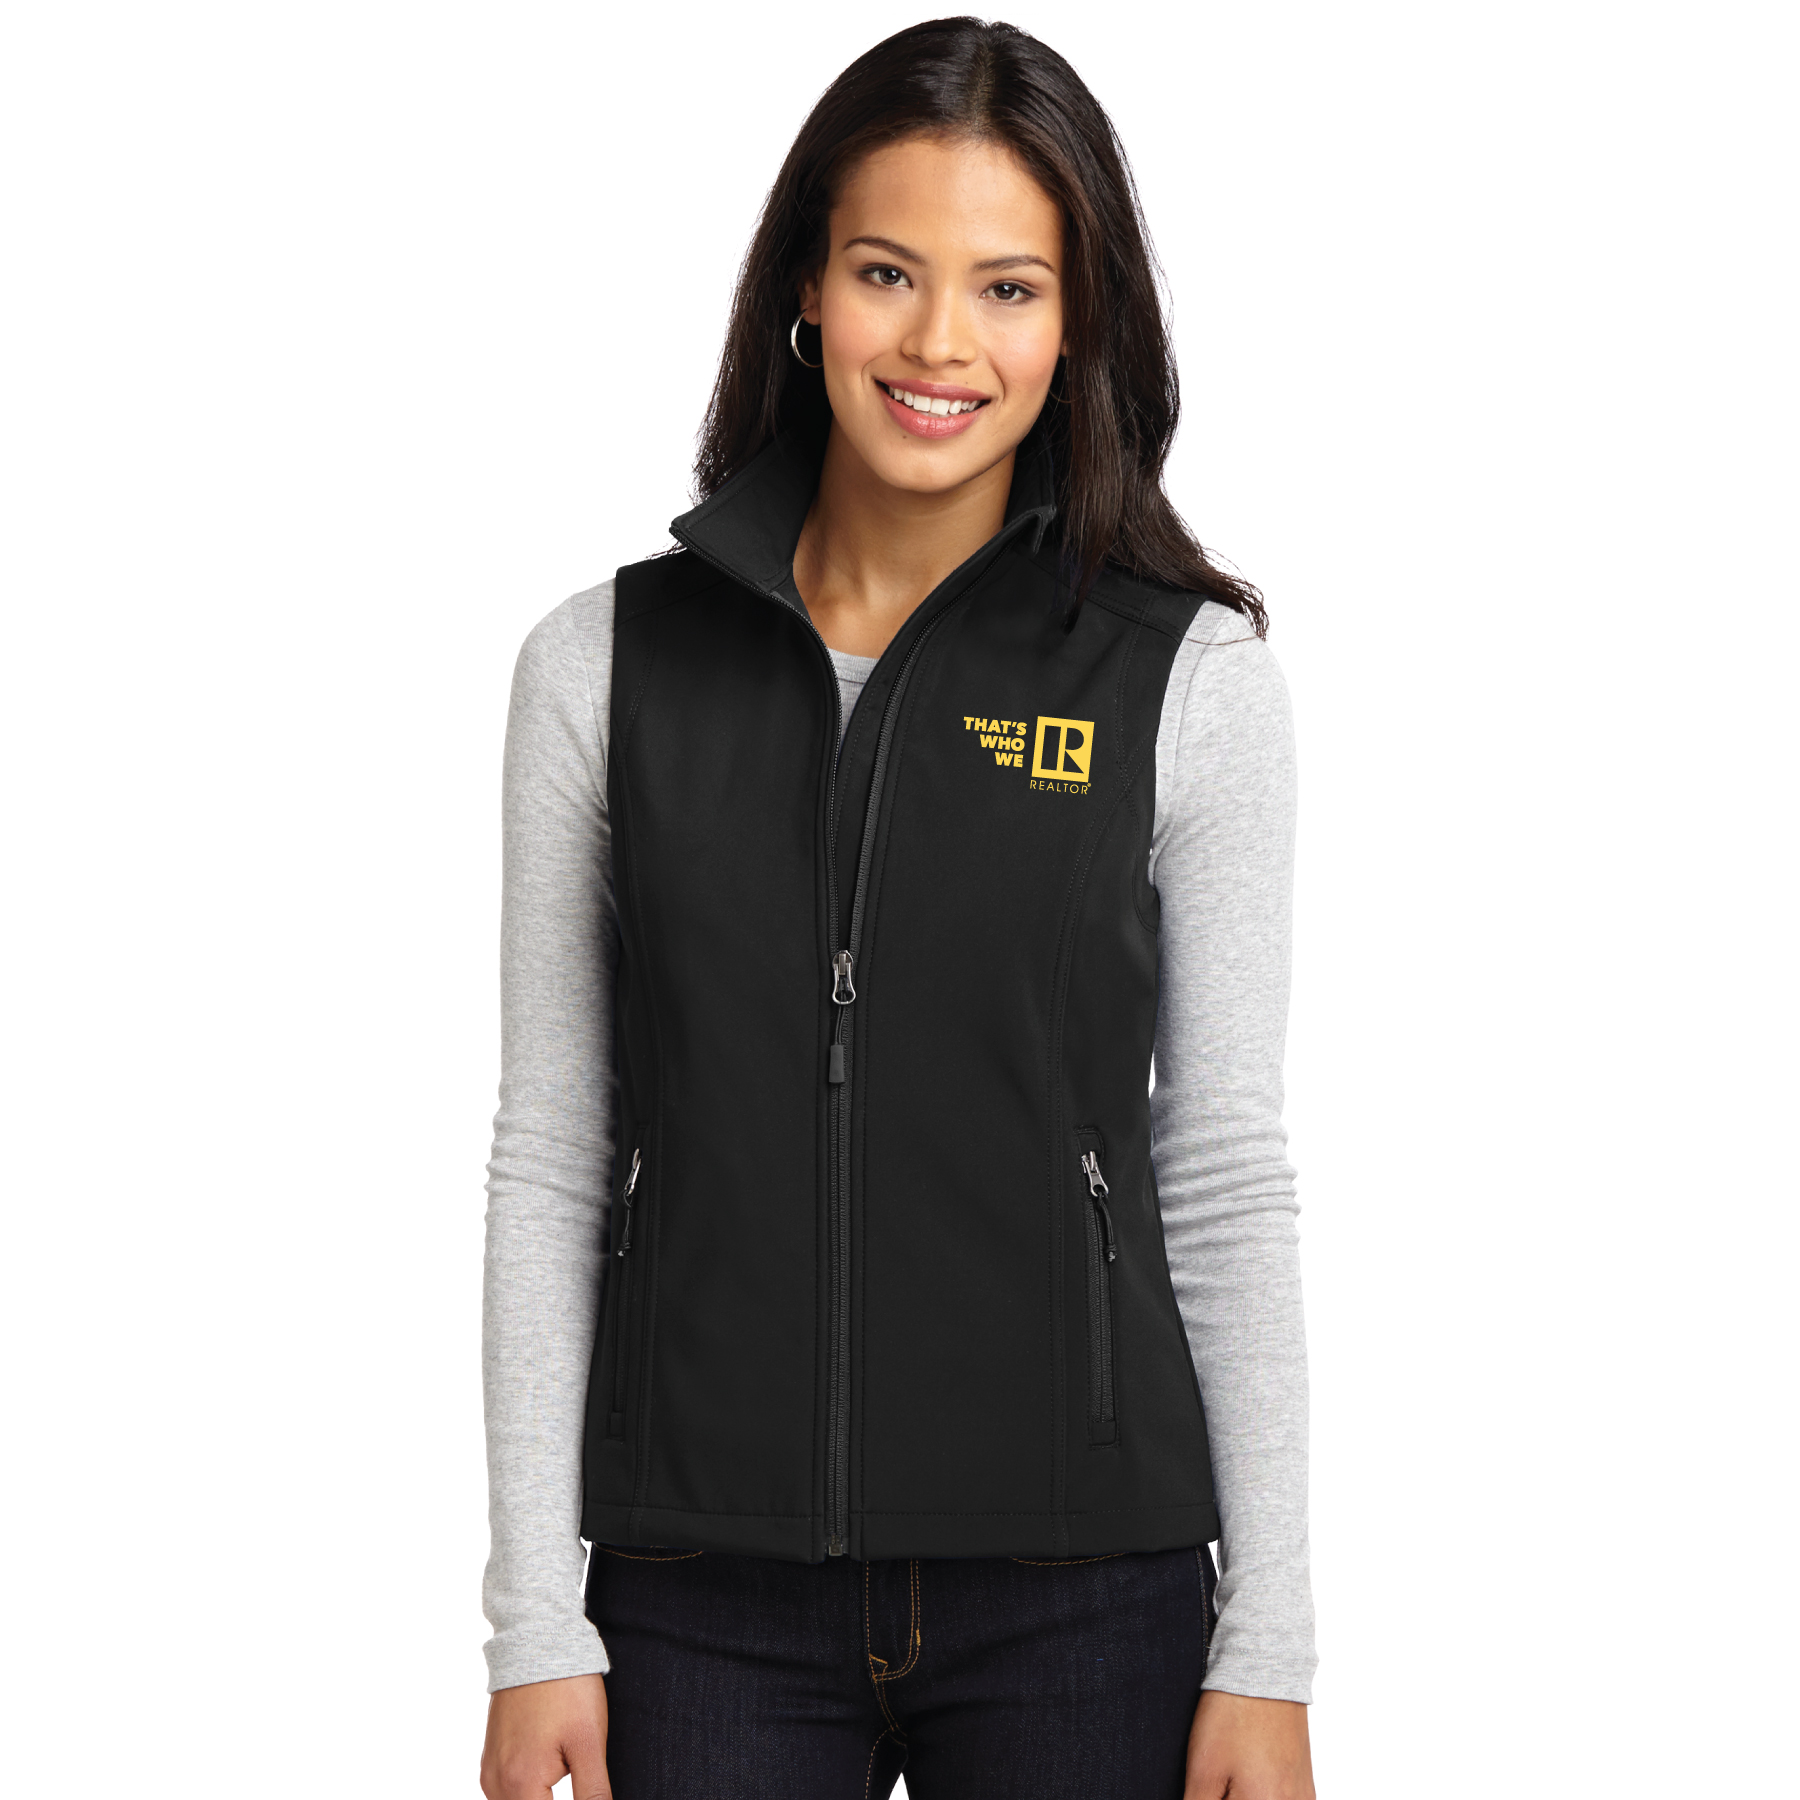 """That's Who We R"" Ladies Core Soft Shell Vest twwr,ThatsWhoWeR,That's,TWWR,ThatWho,That'sWho,Twwr,Thats,Whos,We,Ares,Twwr,Thats,Whos,Wes,Ares,ladies, softs, shells, vests"